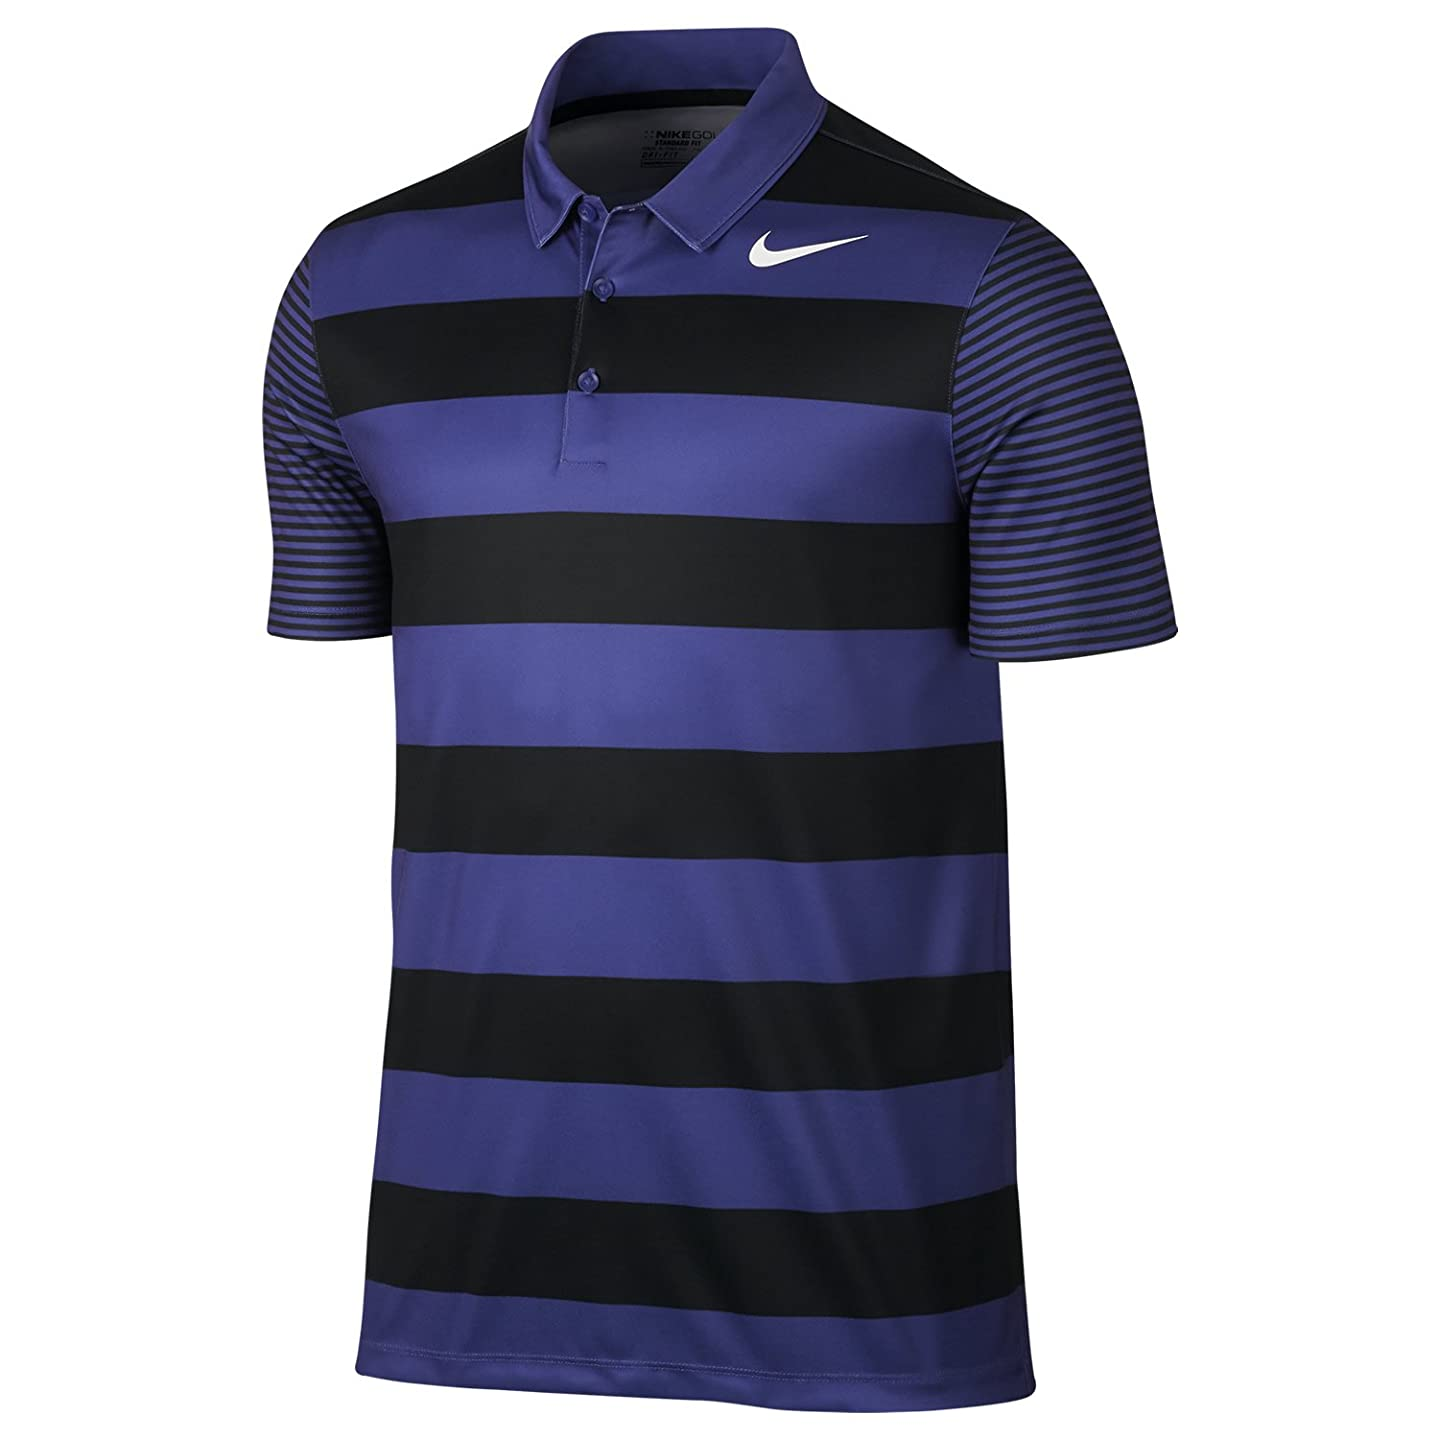 NIKE Men's Dry Bold Stripe Golf Polo